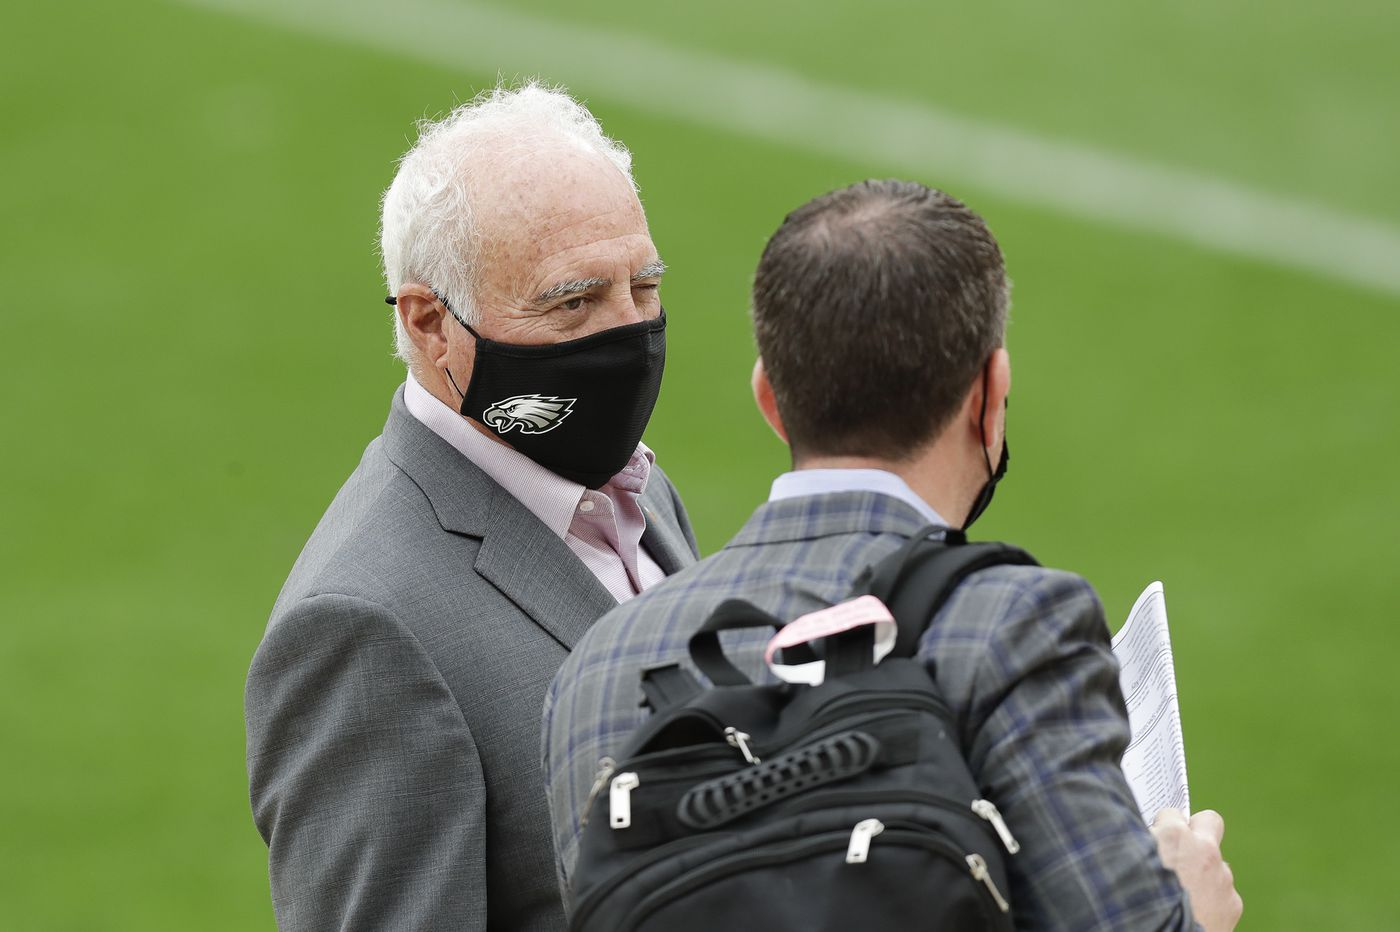 Jeffrey Lurie's atypical absence from Browns game speaks to Eagles owner's frustration, sources say